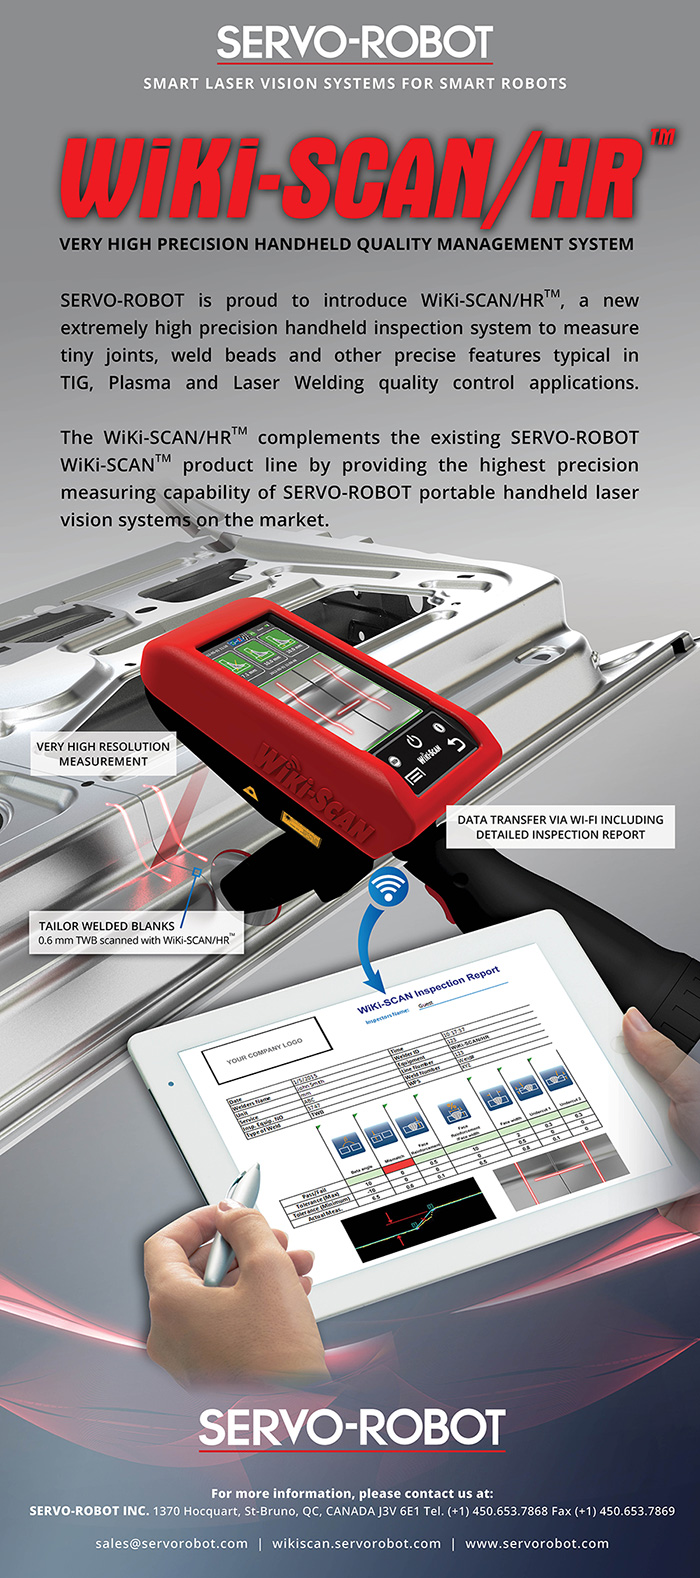 WiKi-SCAN/HR™, a new extremely high precision handheld inspection system to measure tiny joints, weld beads and other precise features.